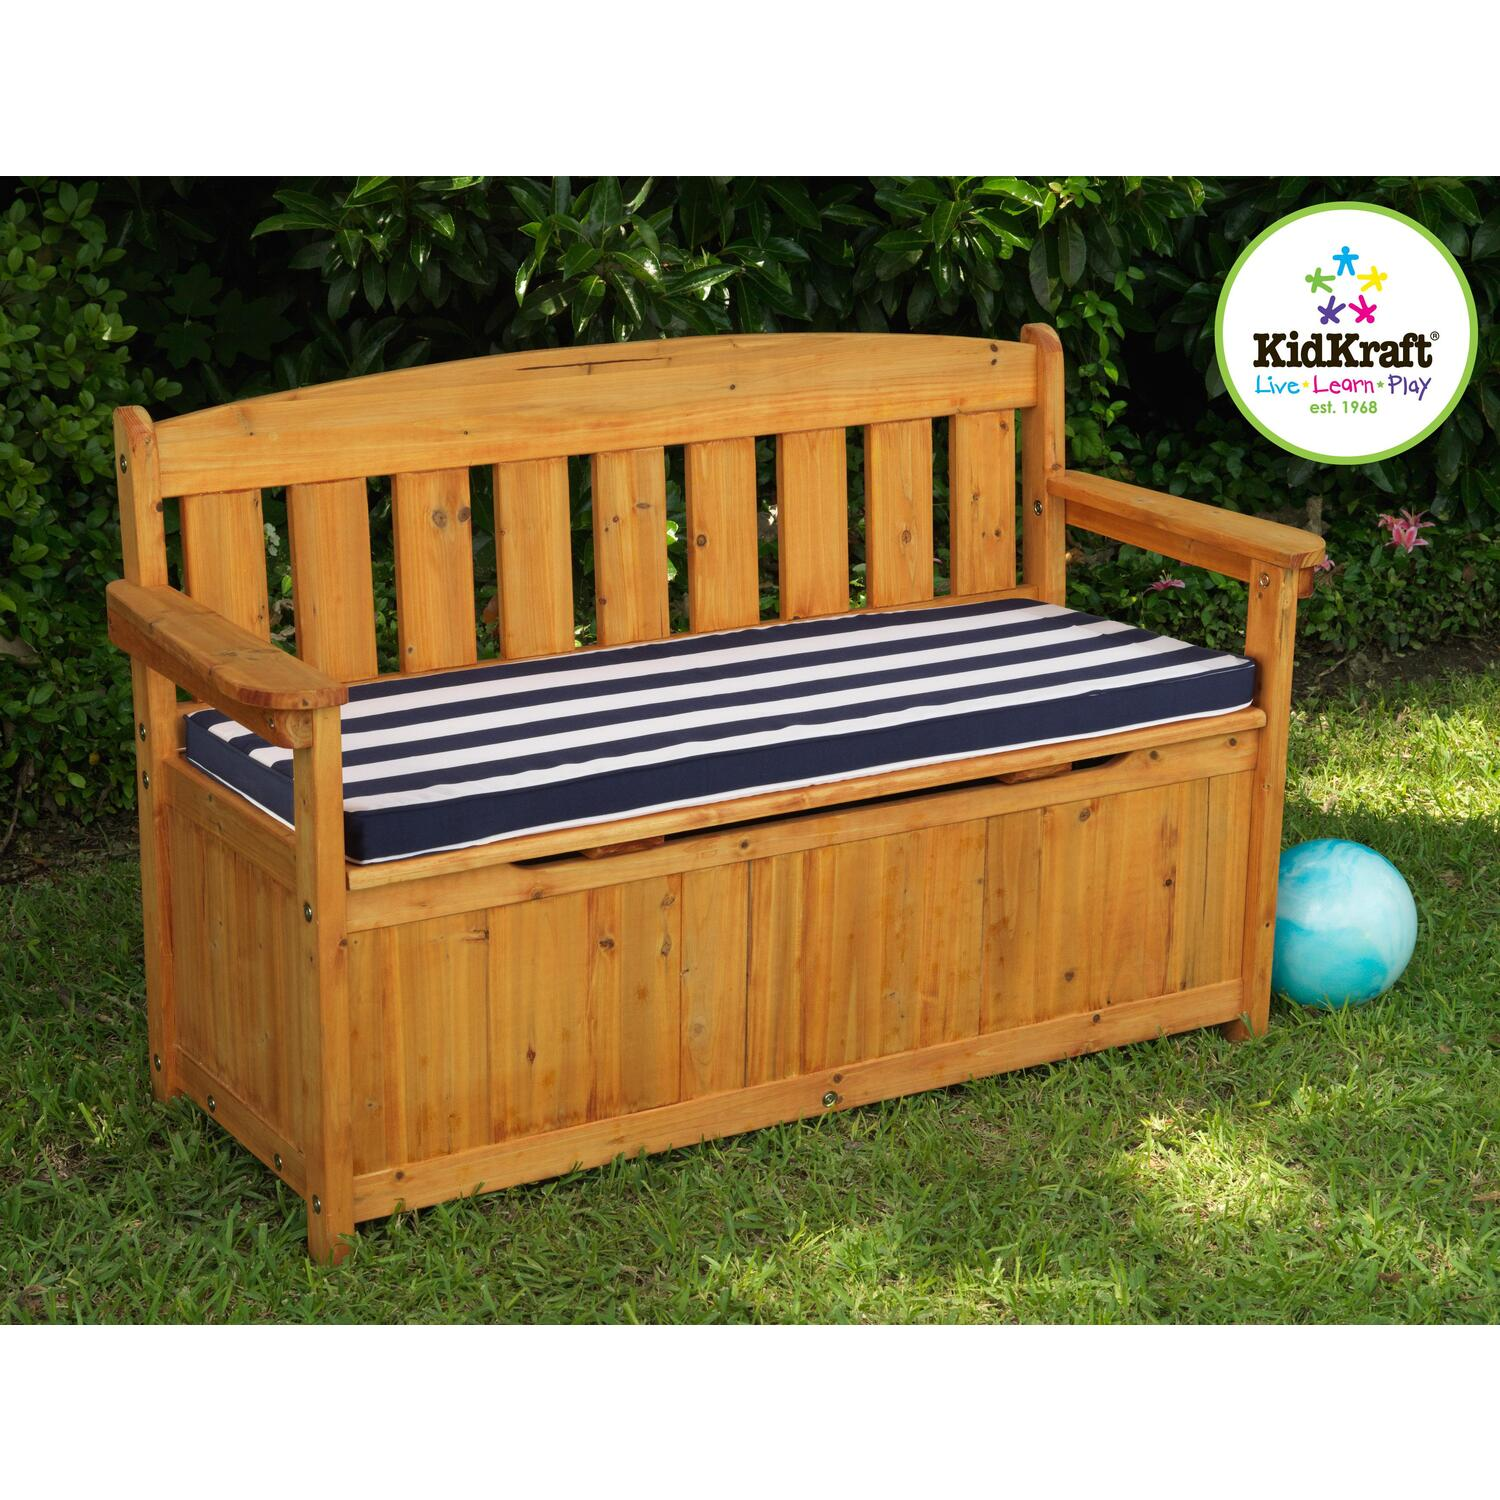 Outdoor Storage Bench Instructions, Oct... Amazing Wood Plans